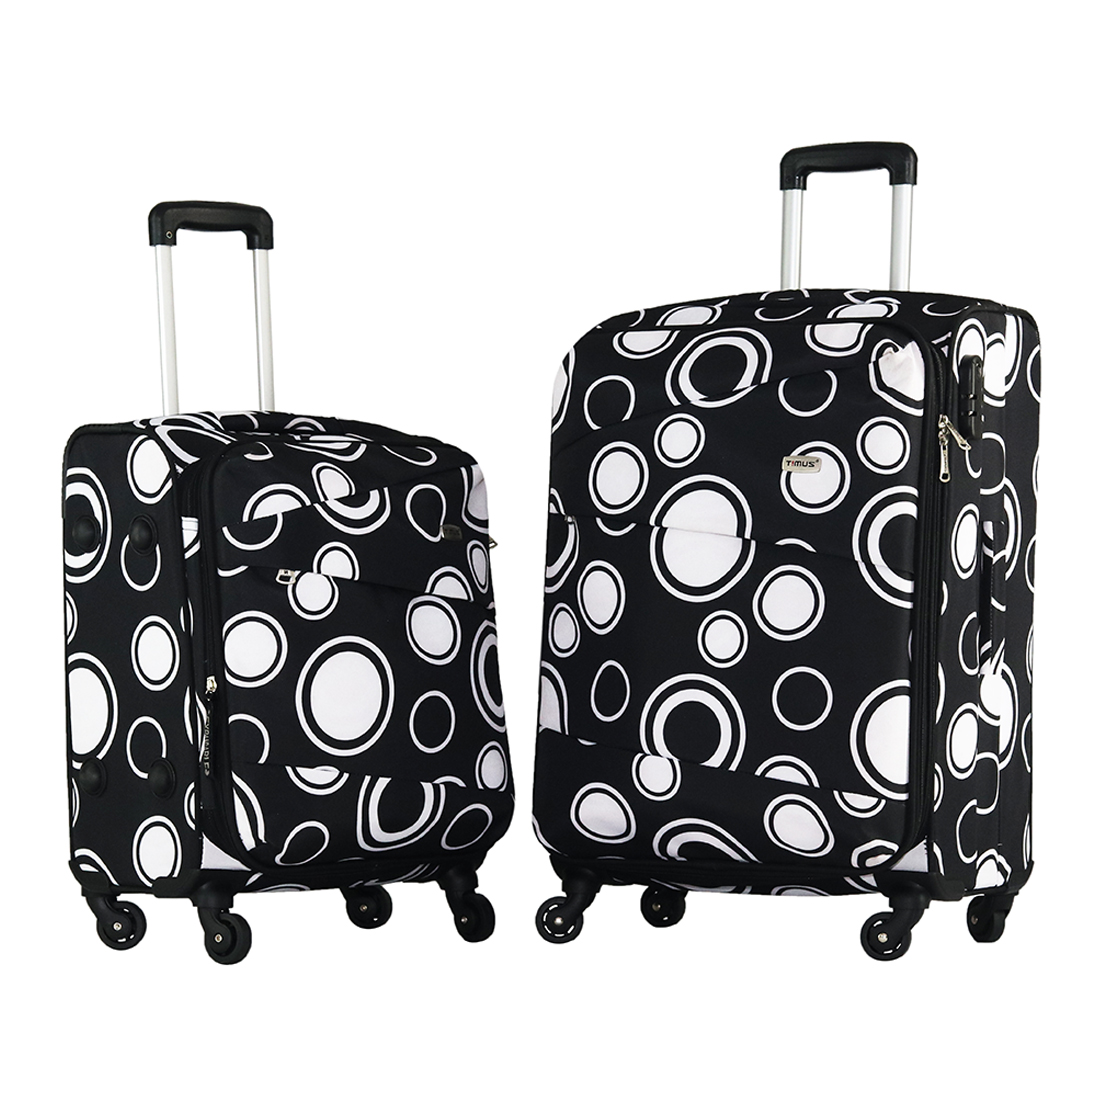 Timus Indigo Spinner Black 4 Wheel Strolley Suitcase For Travel Set of 2 Expandable Cabin and Check in Luggage   24 inch  Black